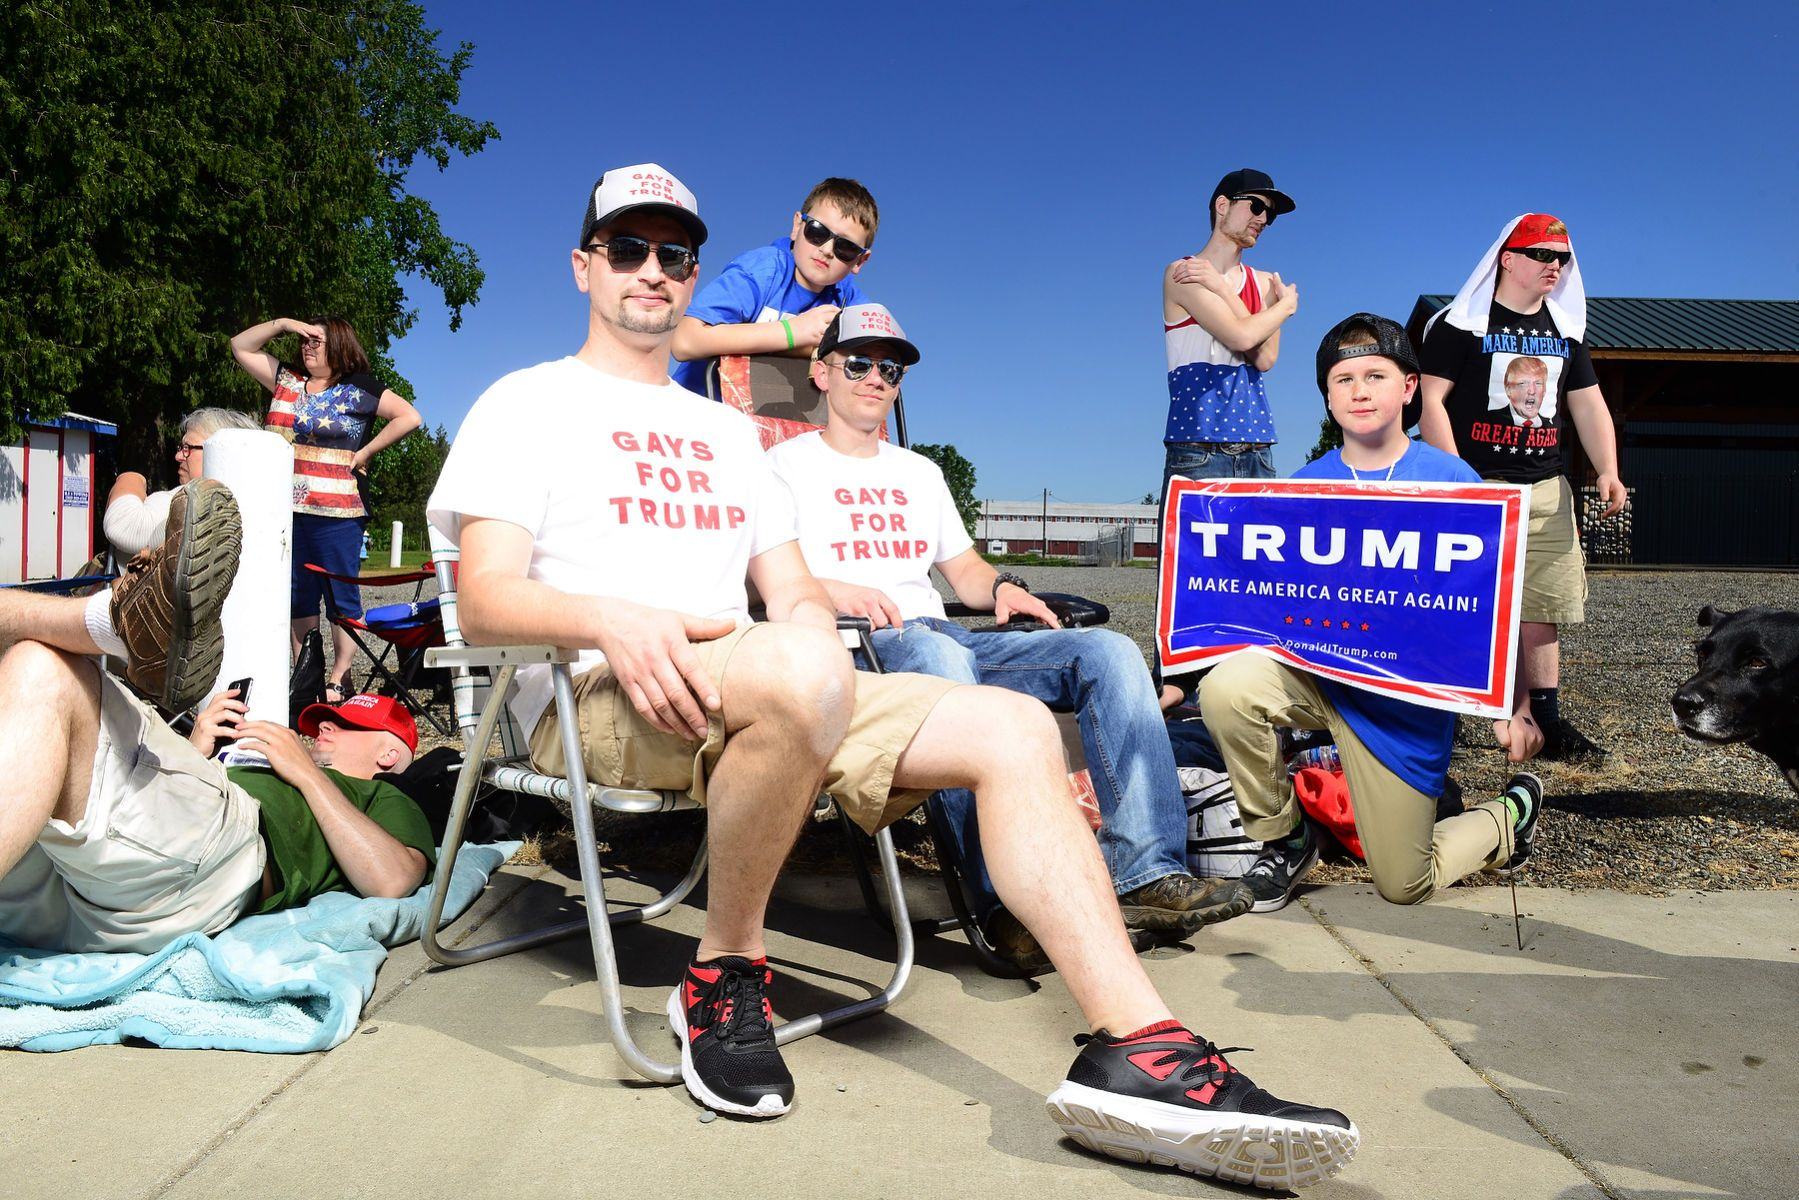 Donald Trump in Lynden, Washington photos